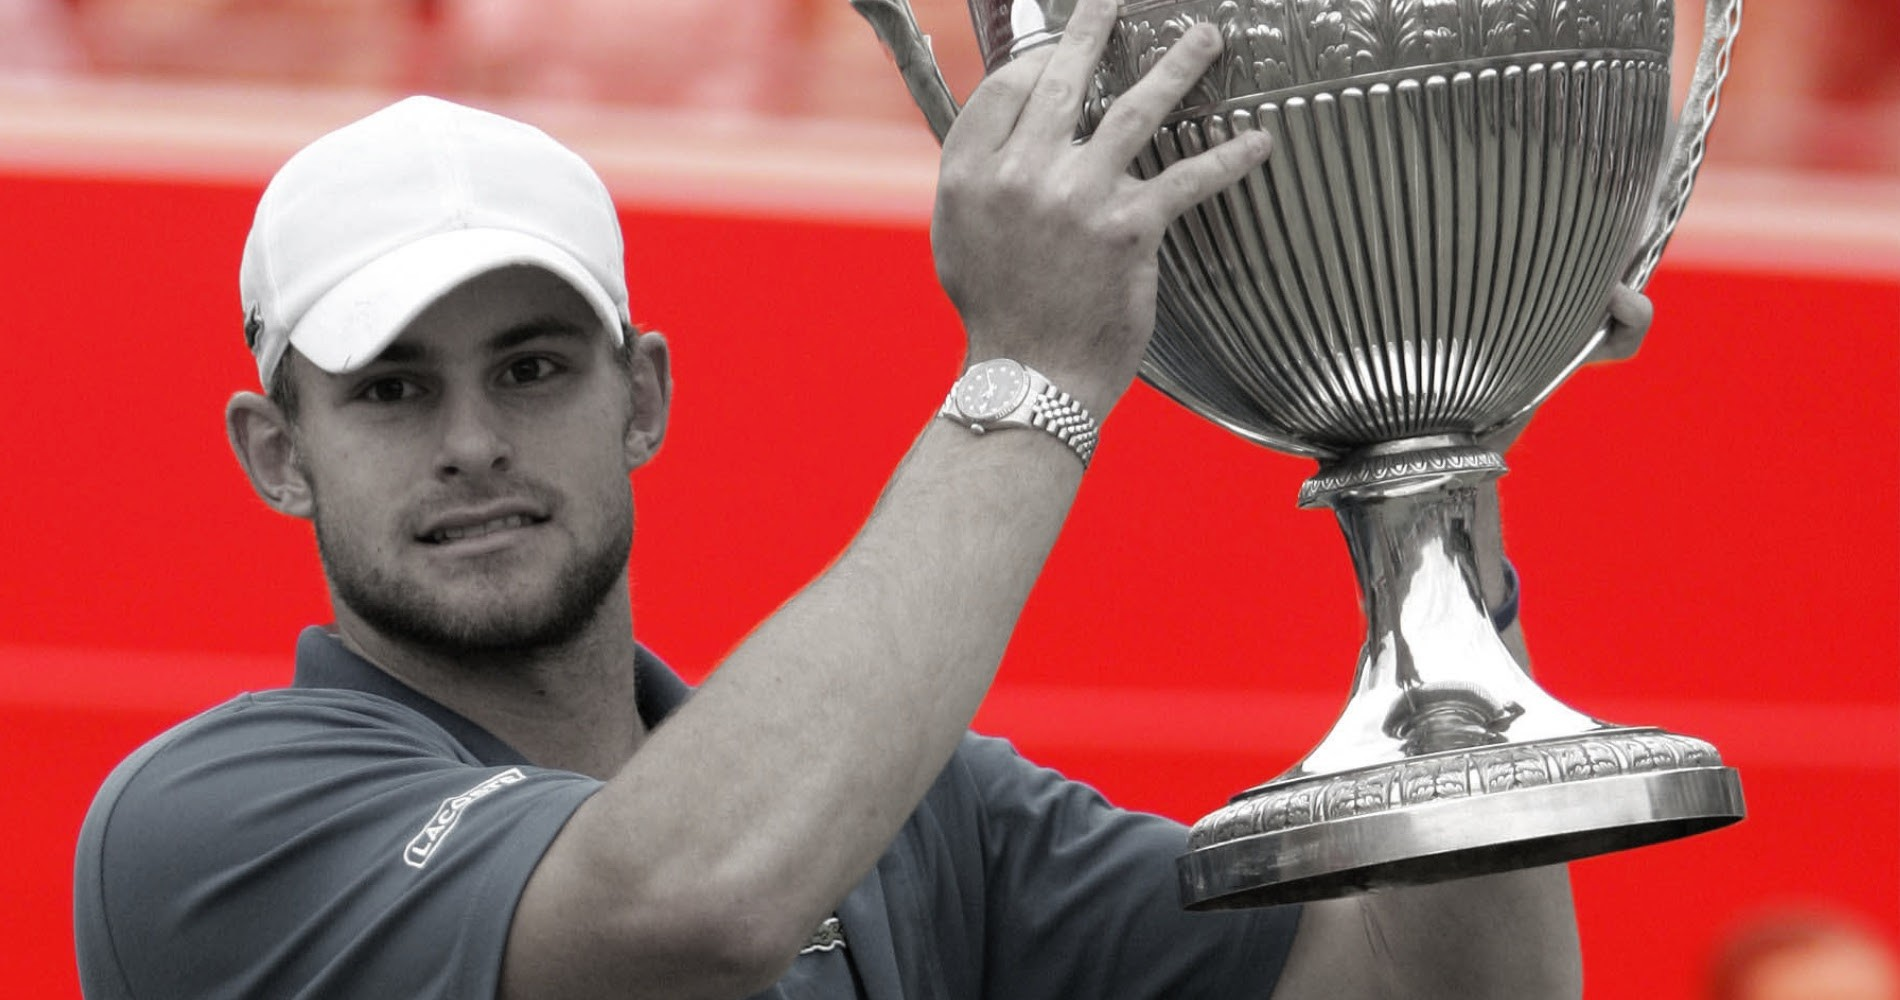 Andy Roddick - On this day